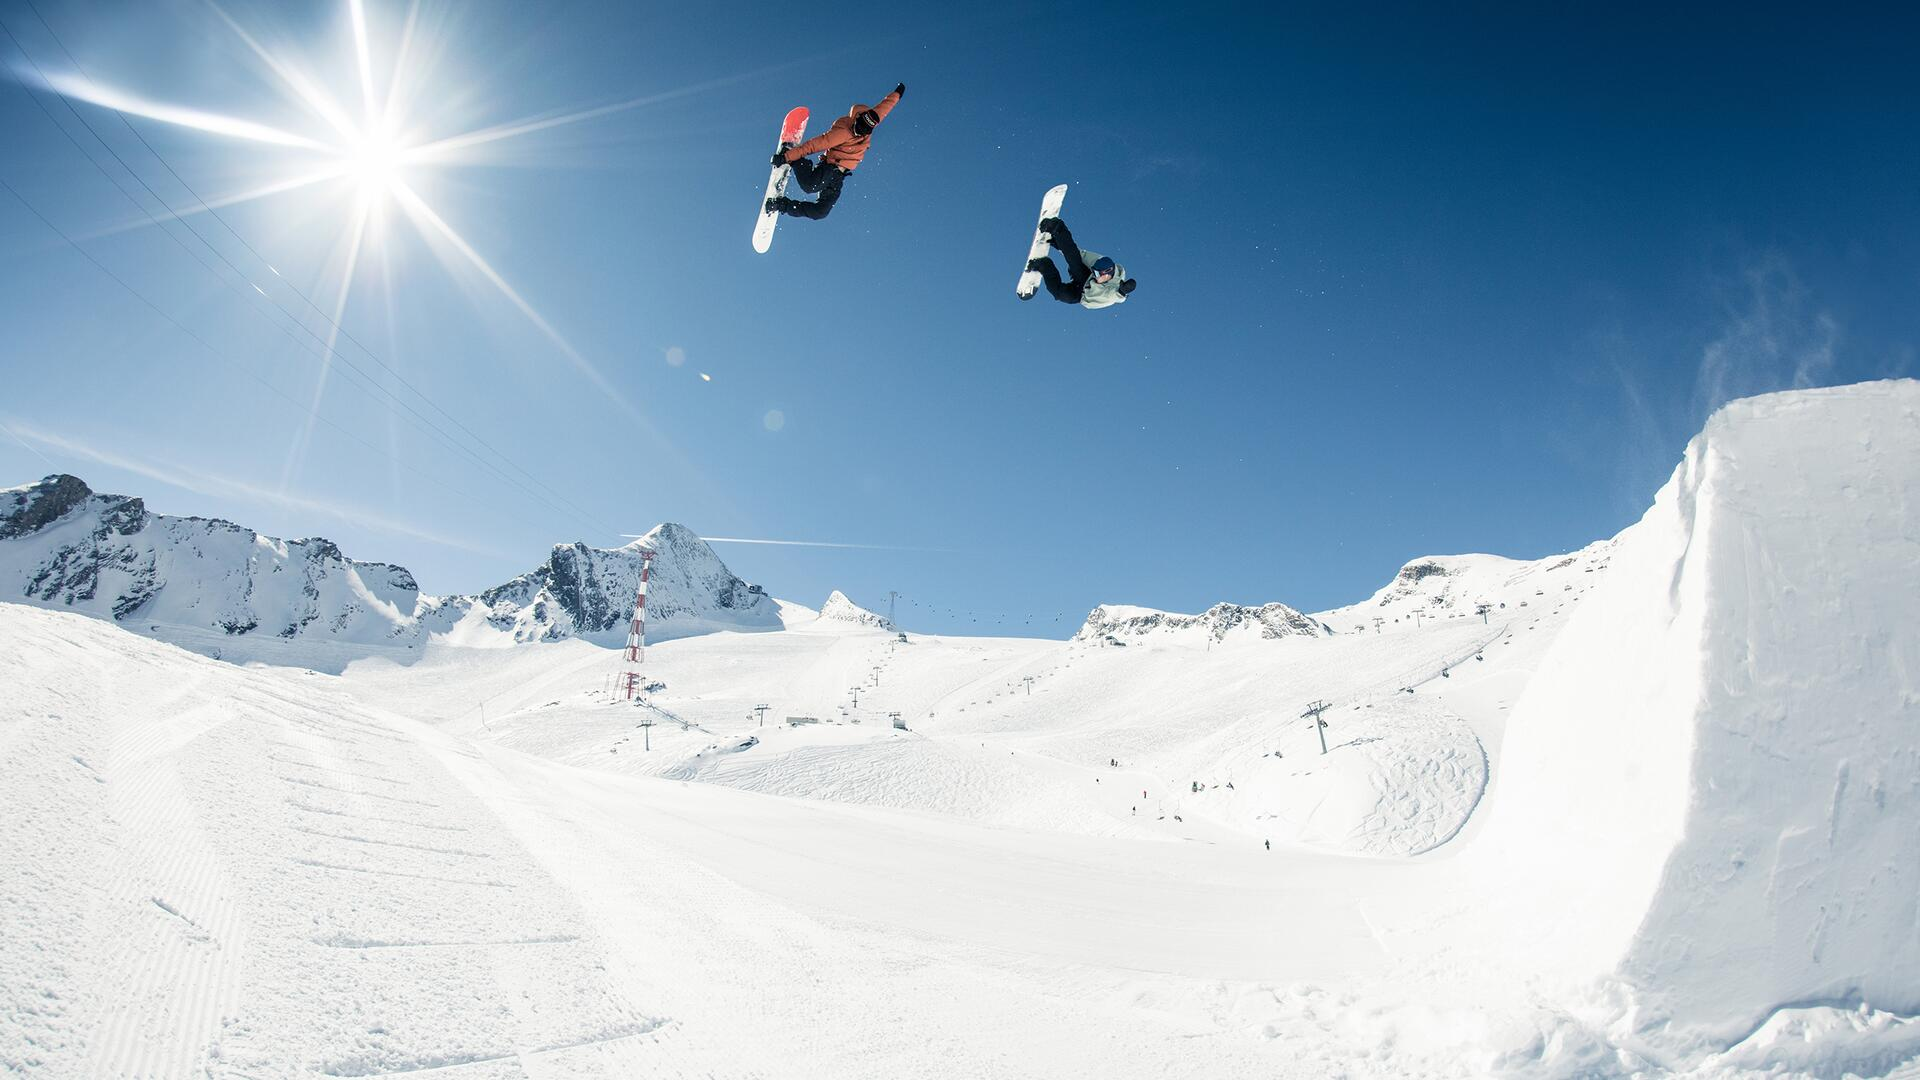 Freestyle Action im Snowpark Kitzsteinhorn